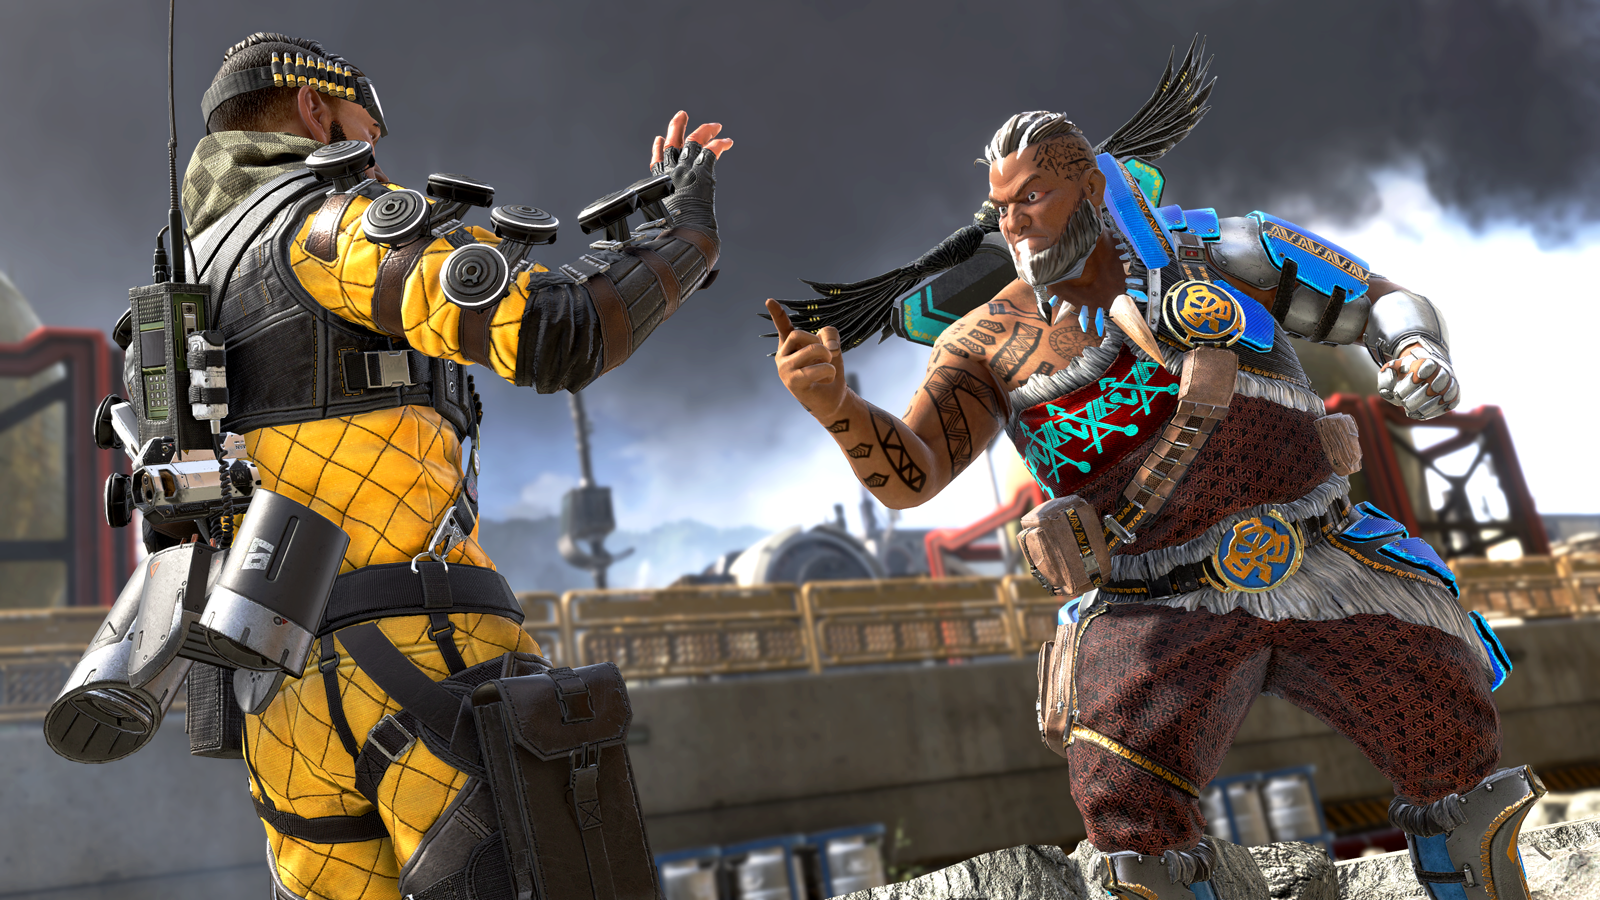 Apex Legends' new Solos mode sees players teaming up against others